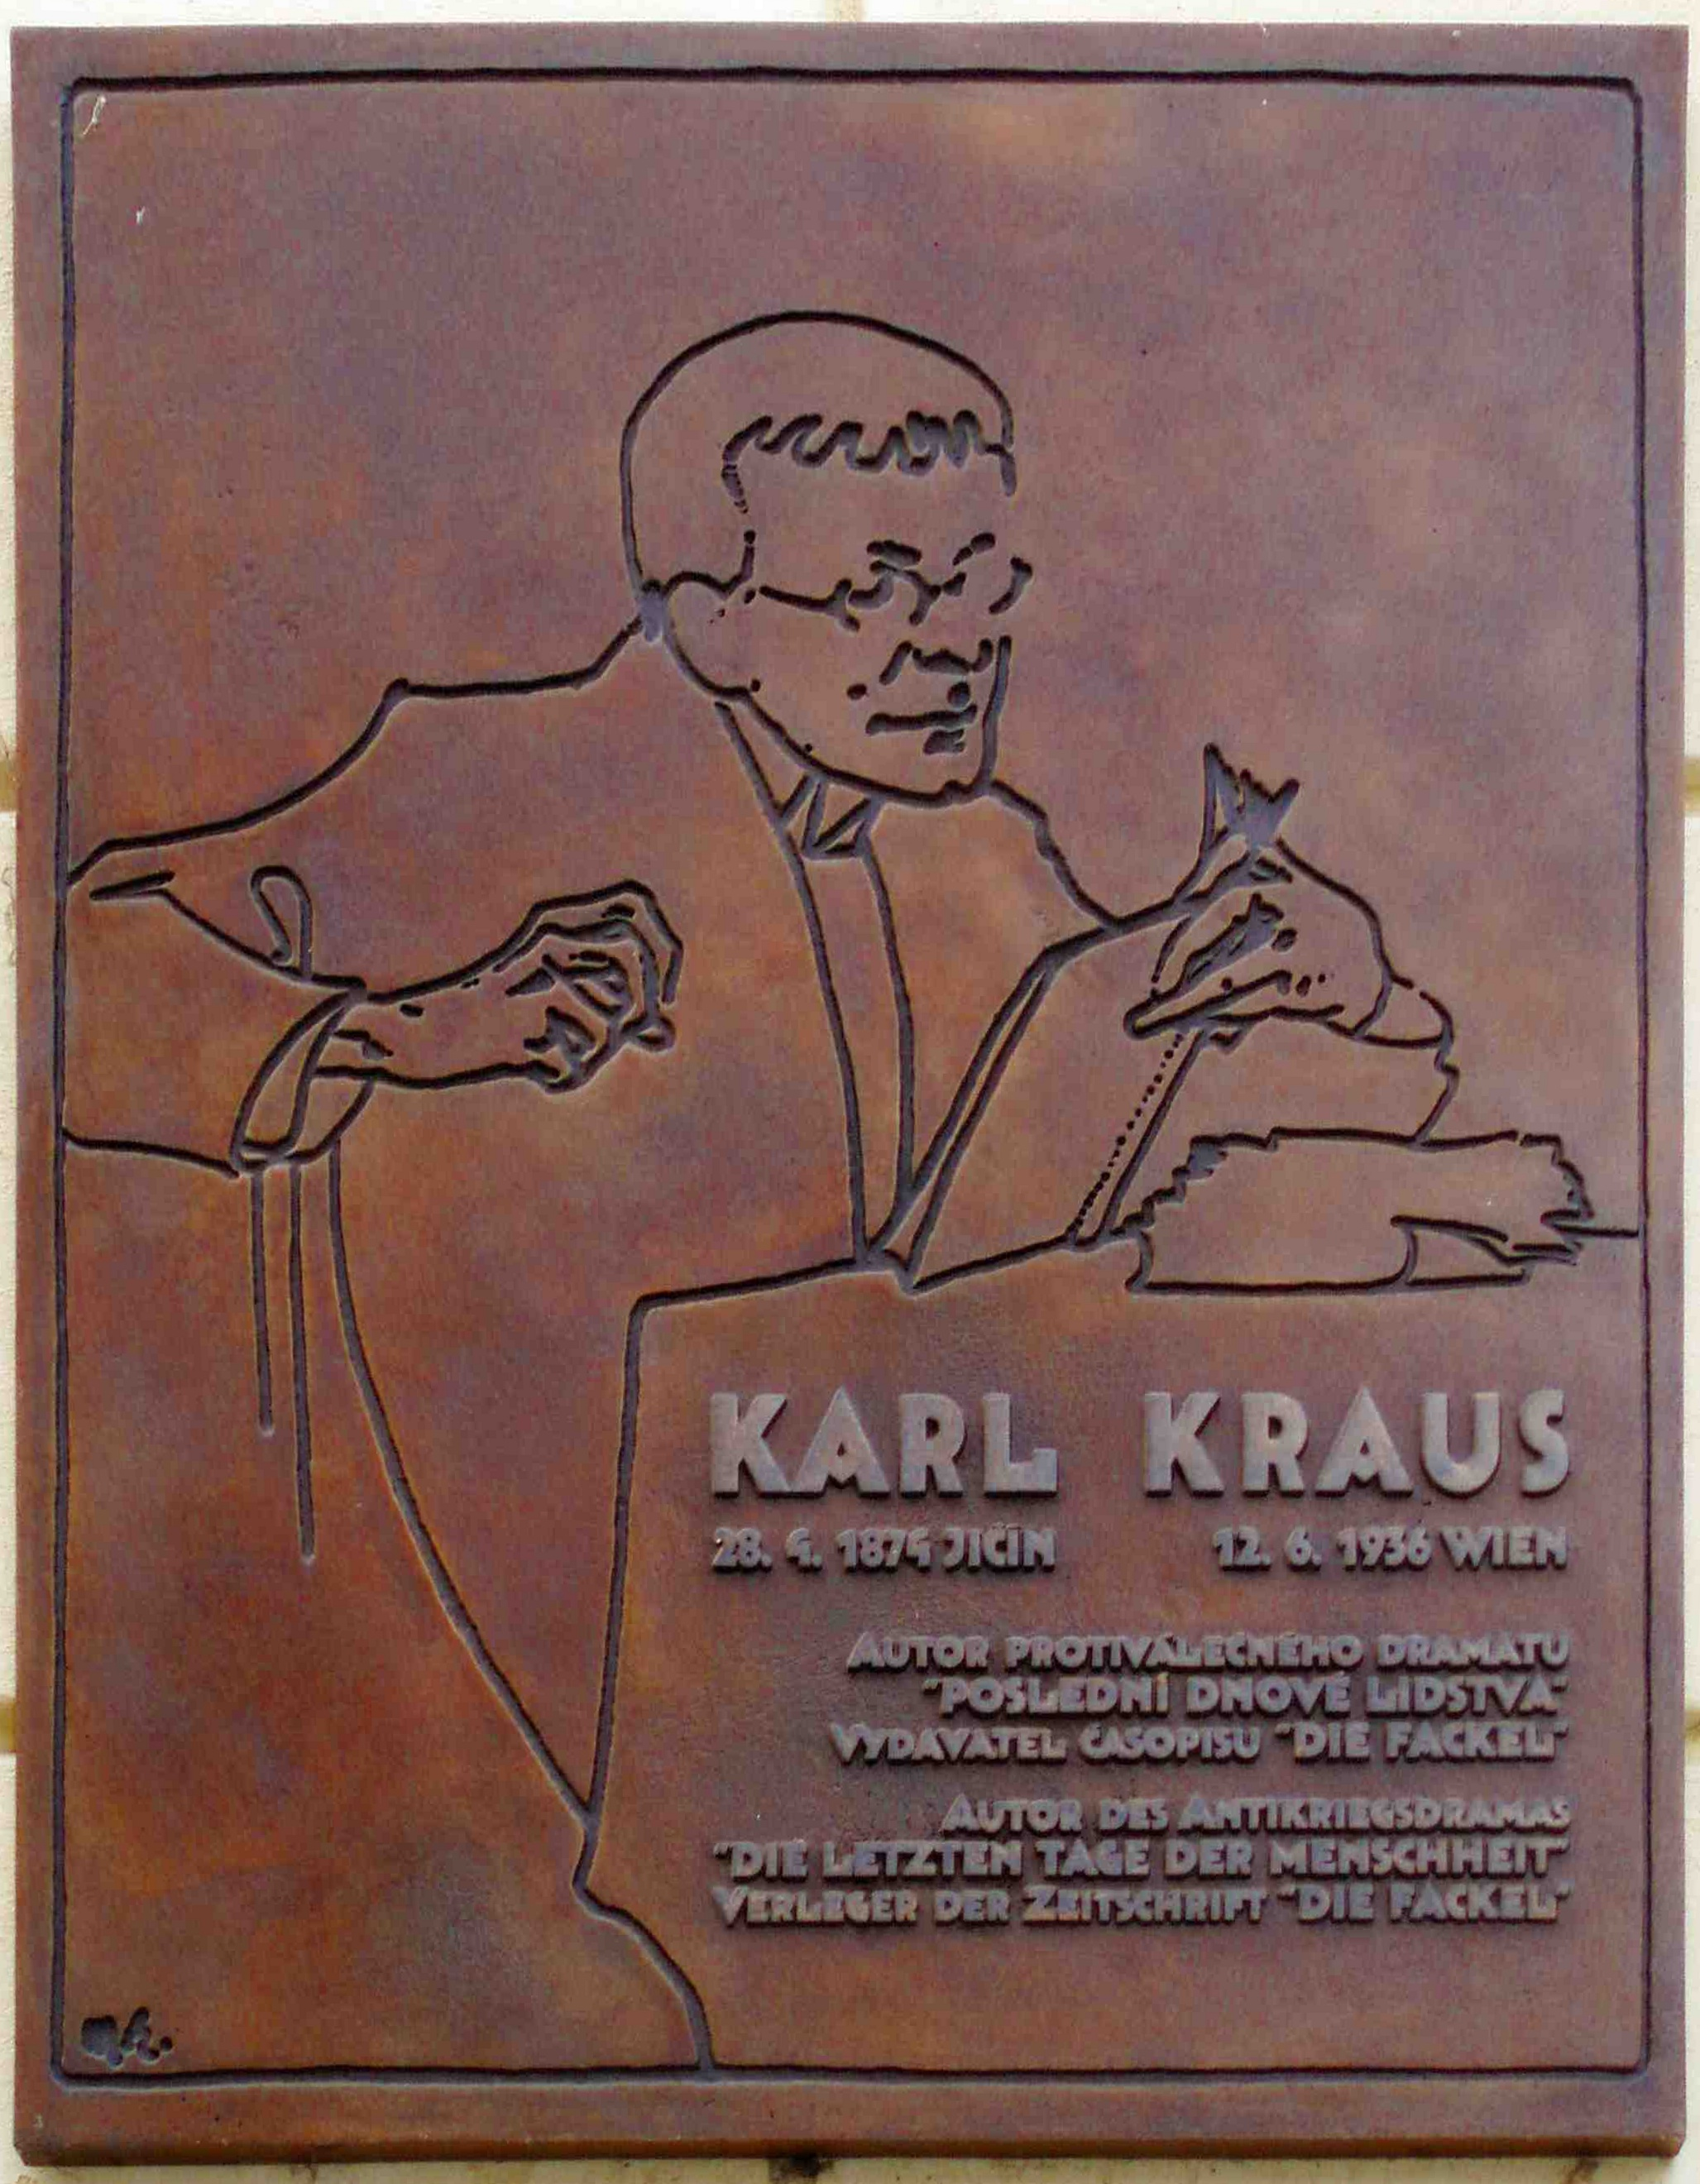 https://upload.wikimedia.org/wikipedia/commons/e/ee/KarlKraus.jpg